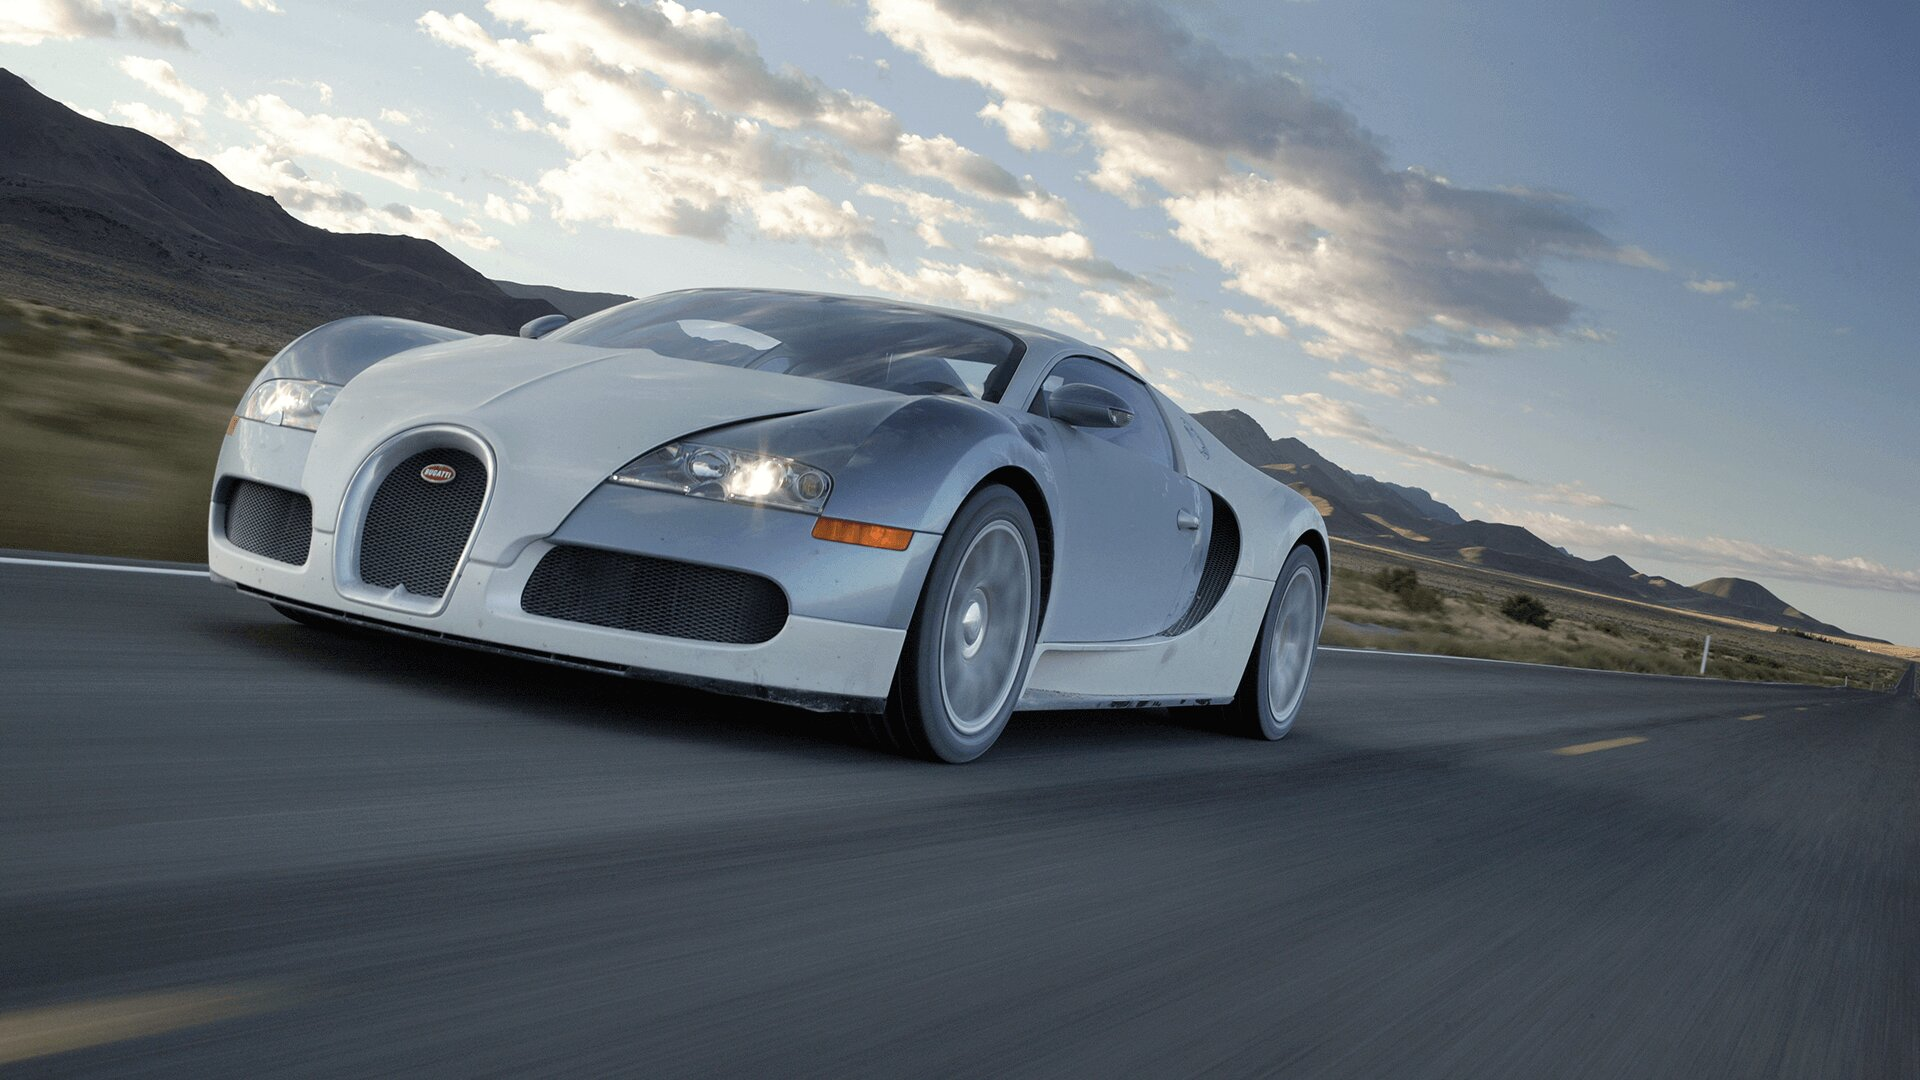 Bugatti Veyron 16.4 - The super sports car